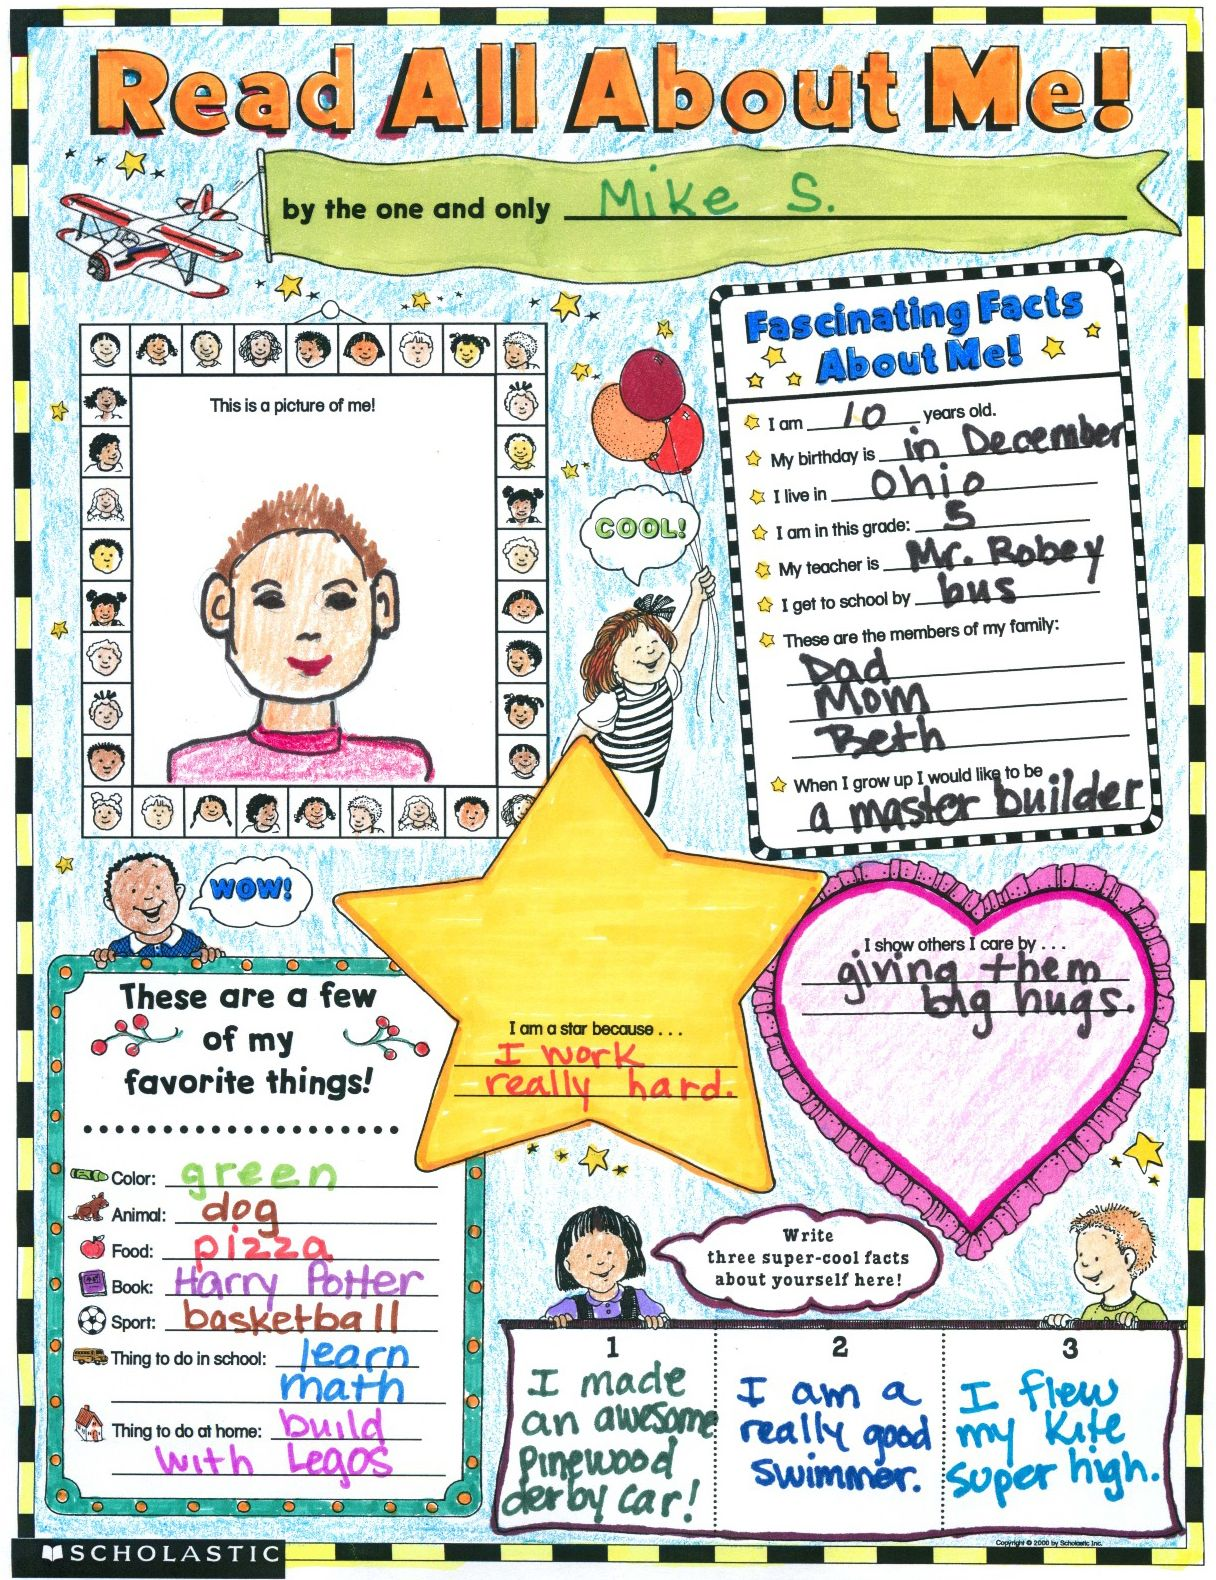 small resolution of Read all about me poster: classroom worksheet.  #AllAboutMeActivities#AllAboutMePoster #Moti…   All about me poster